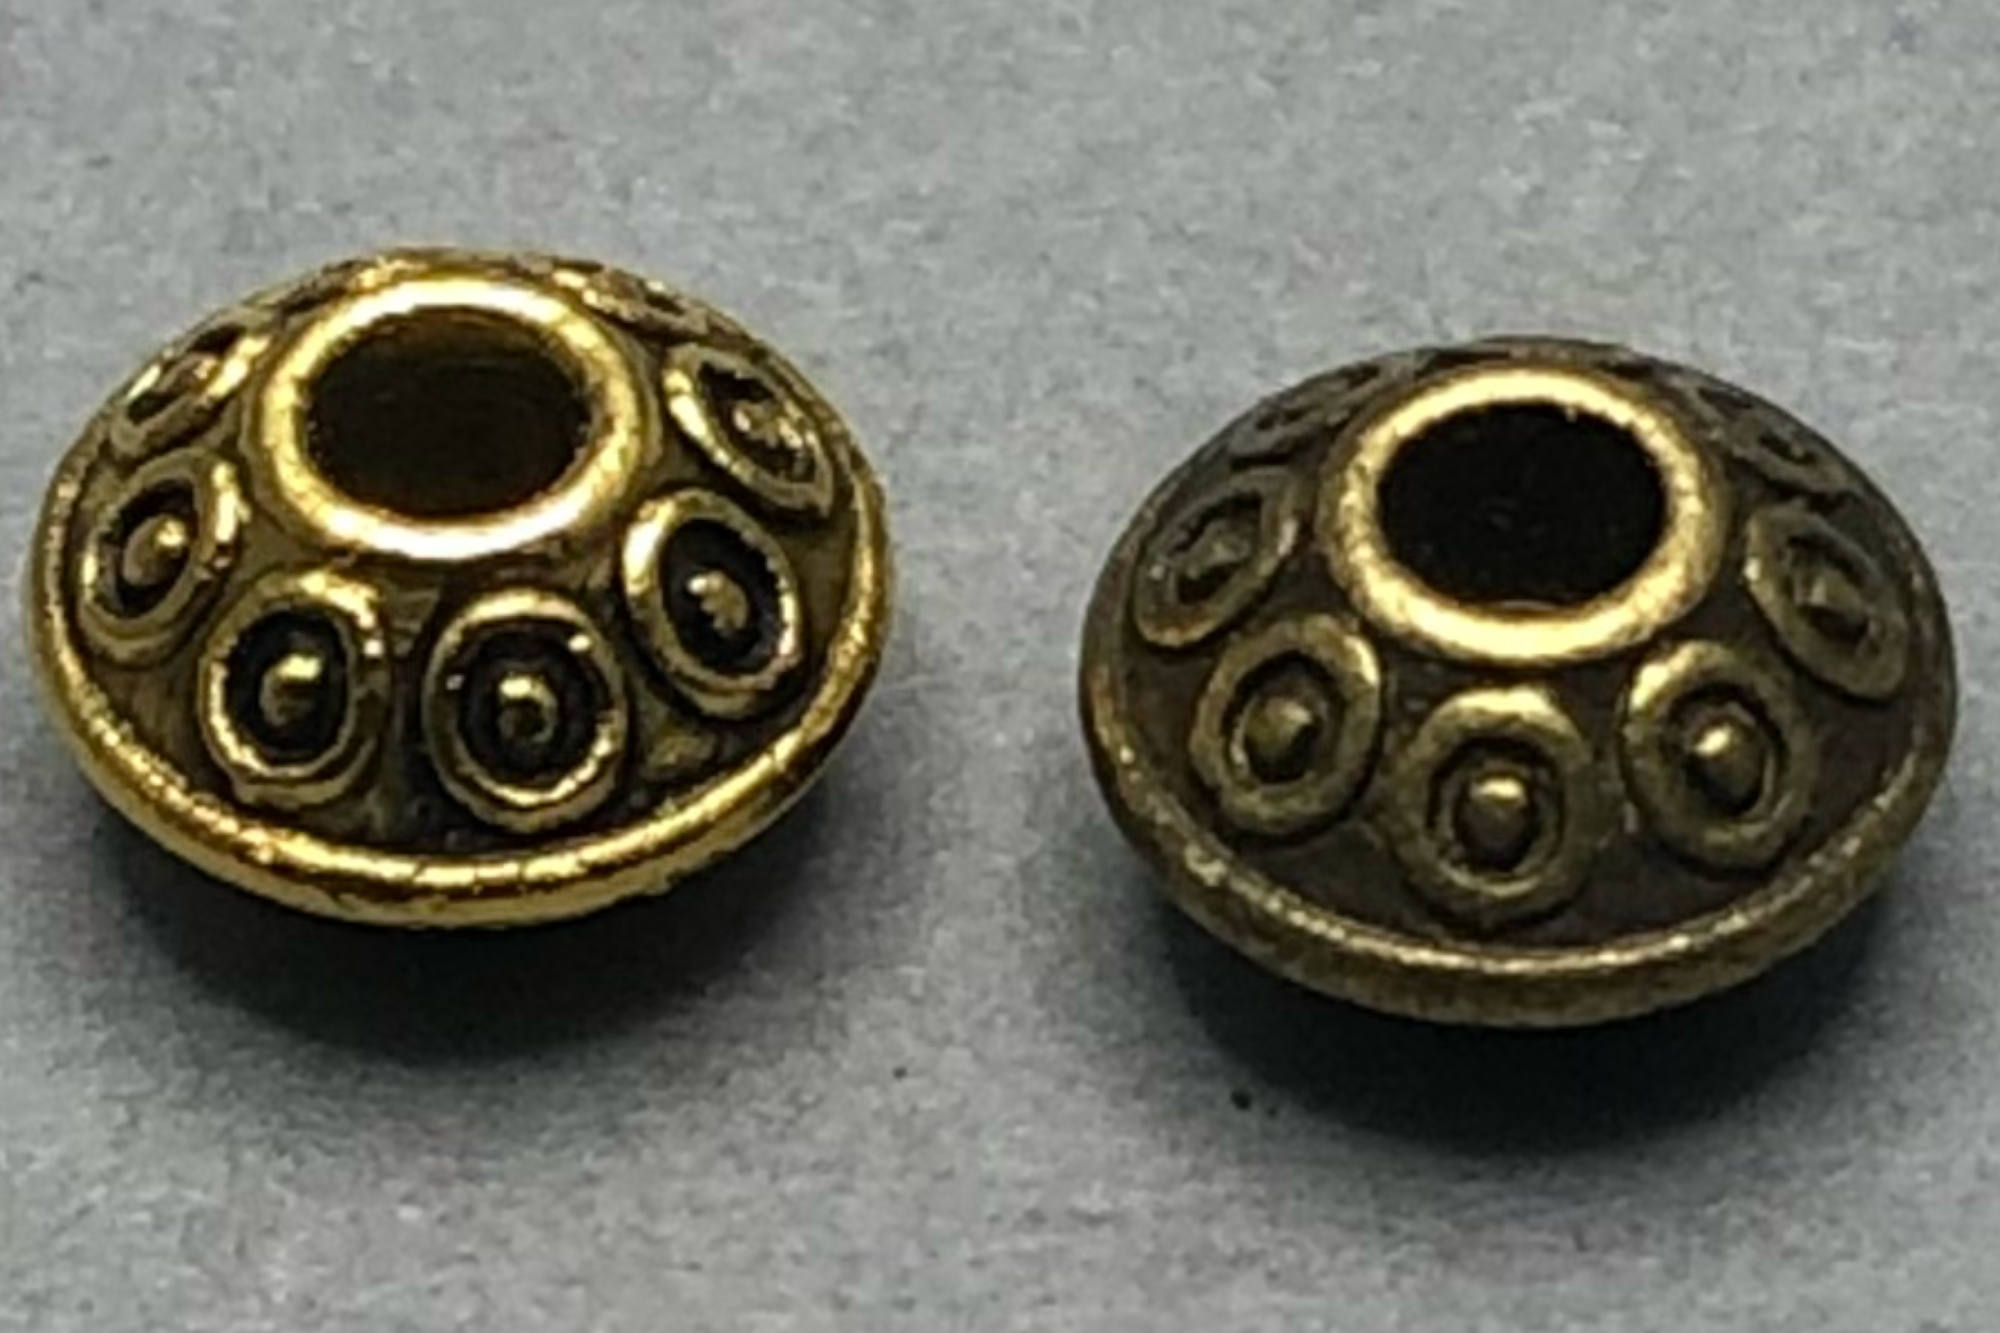 Antique Plated Flat Bicone Spacer Bead 6x4mm, 1mm hole